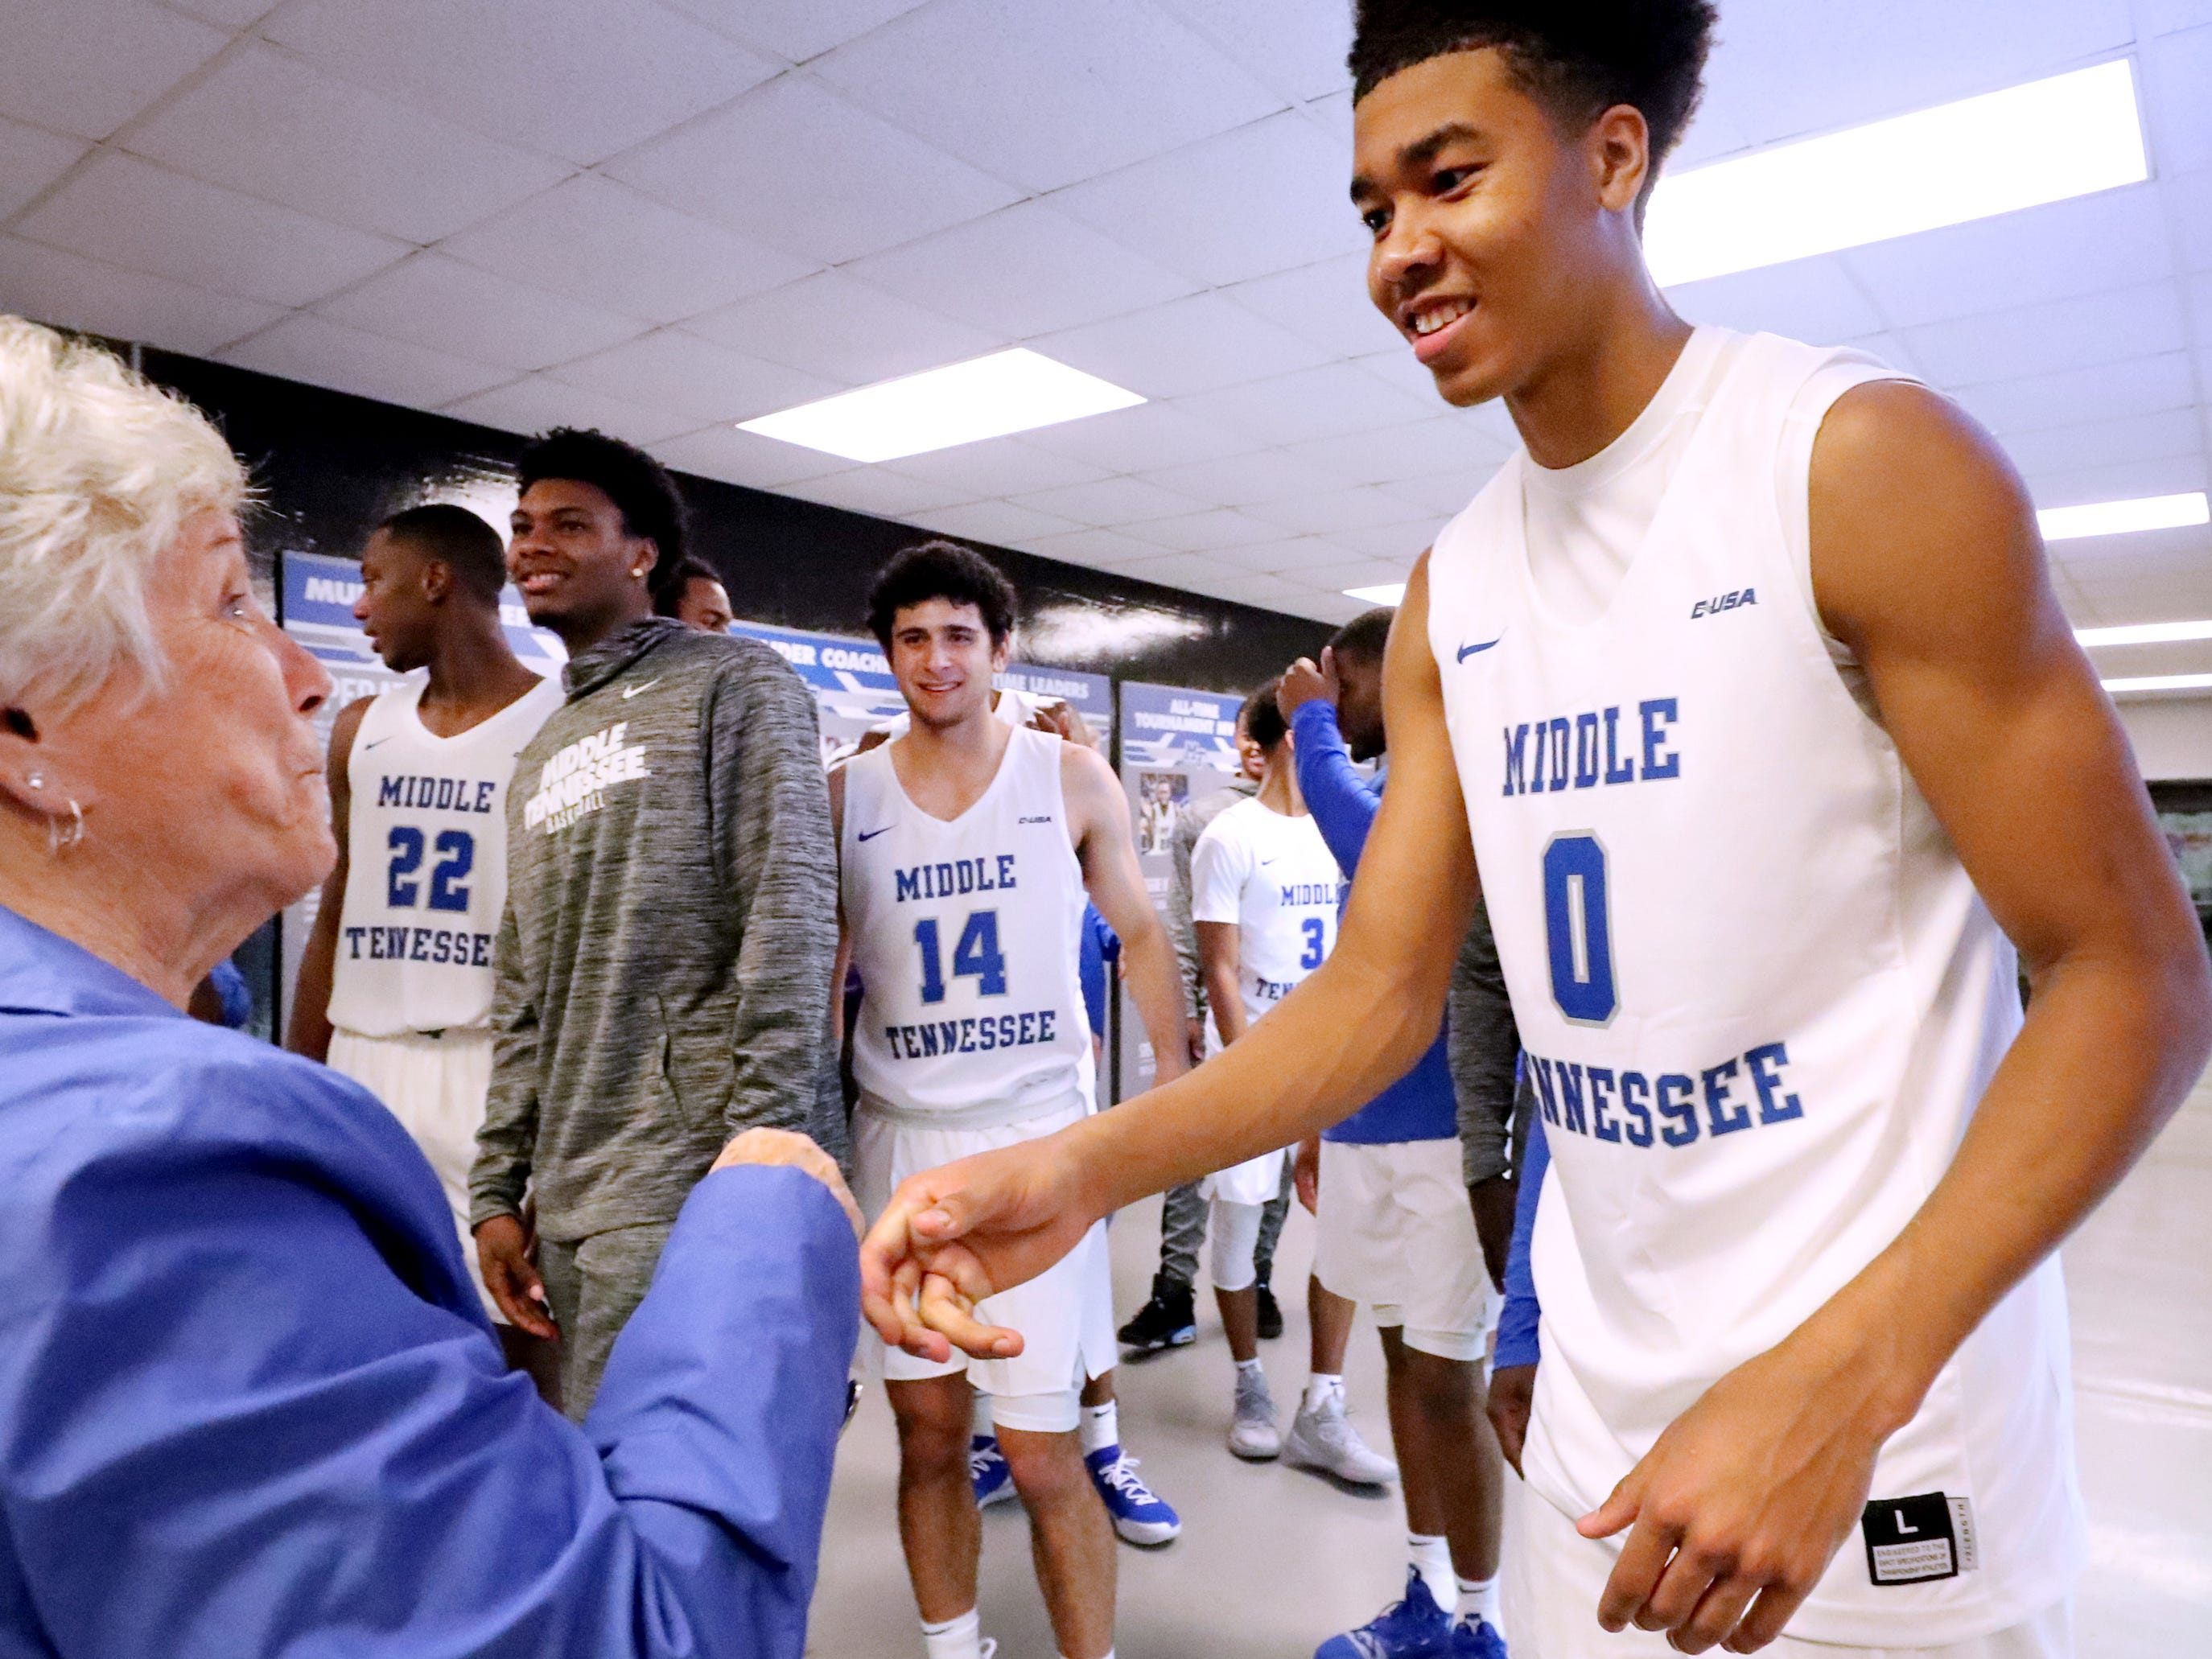 MTSU's Anthony Crump (0) thanks fans for coming to the game as they leave after MTSU defeated Lees-McRae on Tuesday, Nov. 6, 2018.